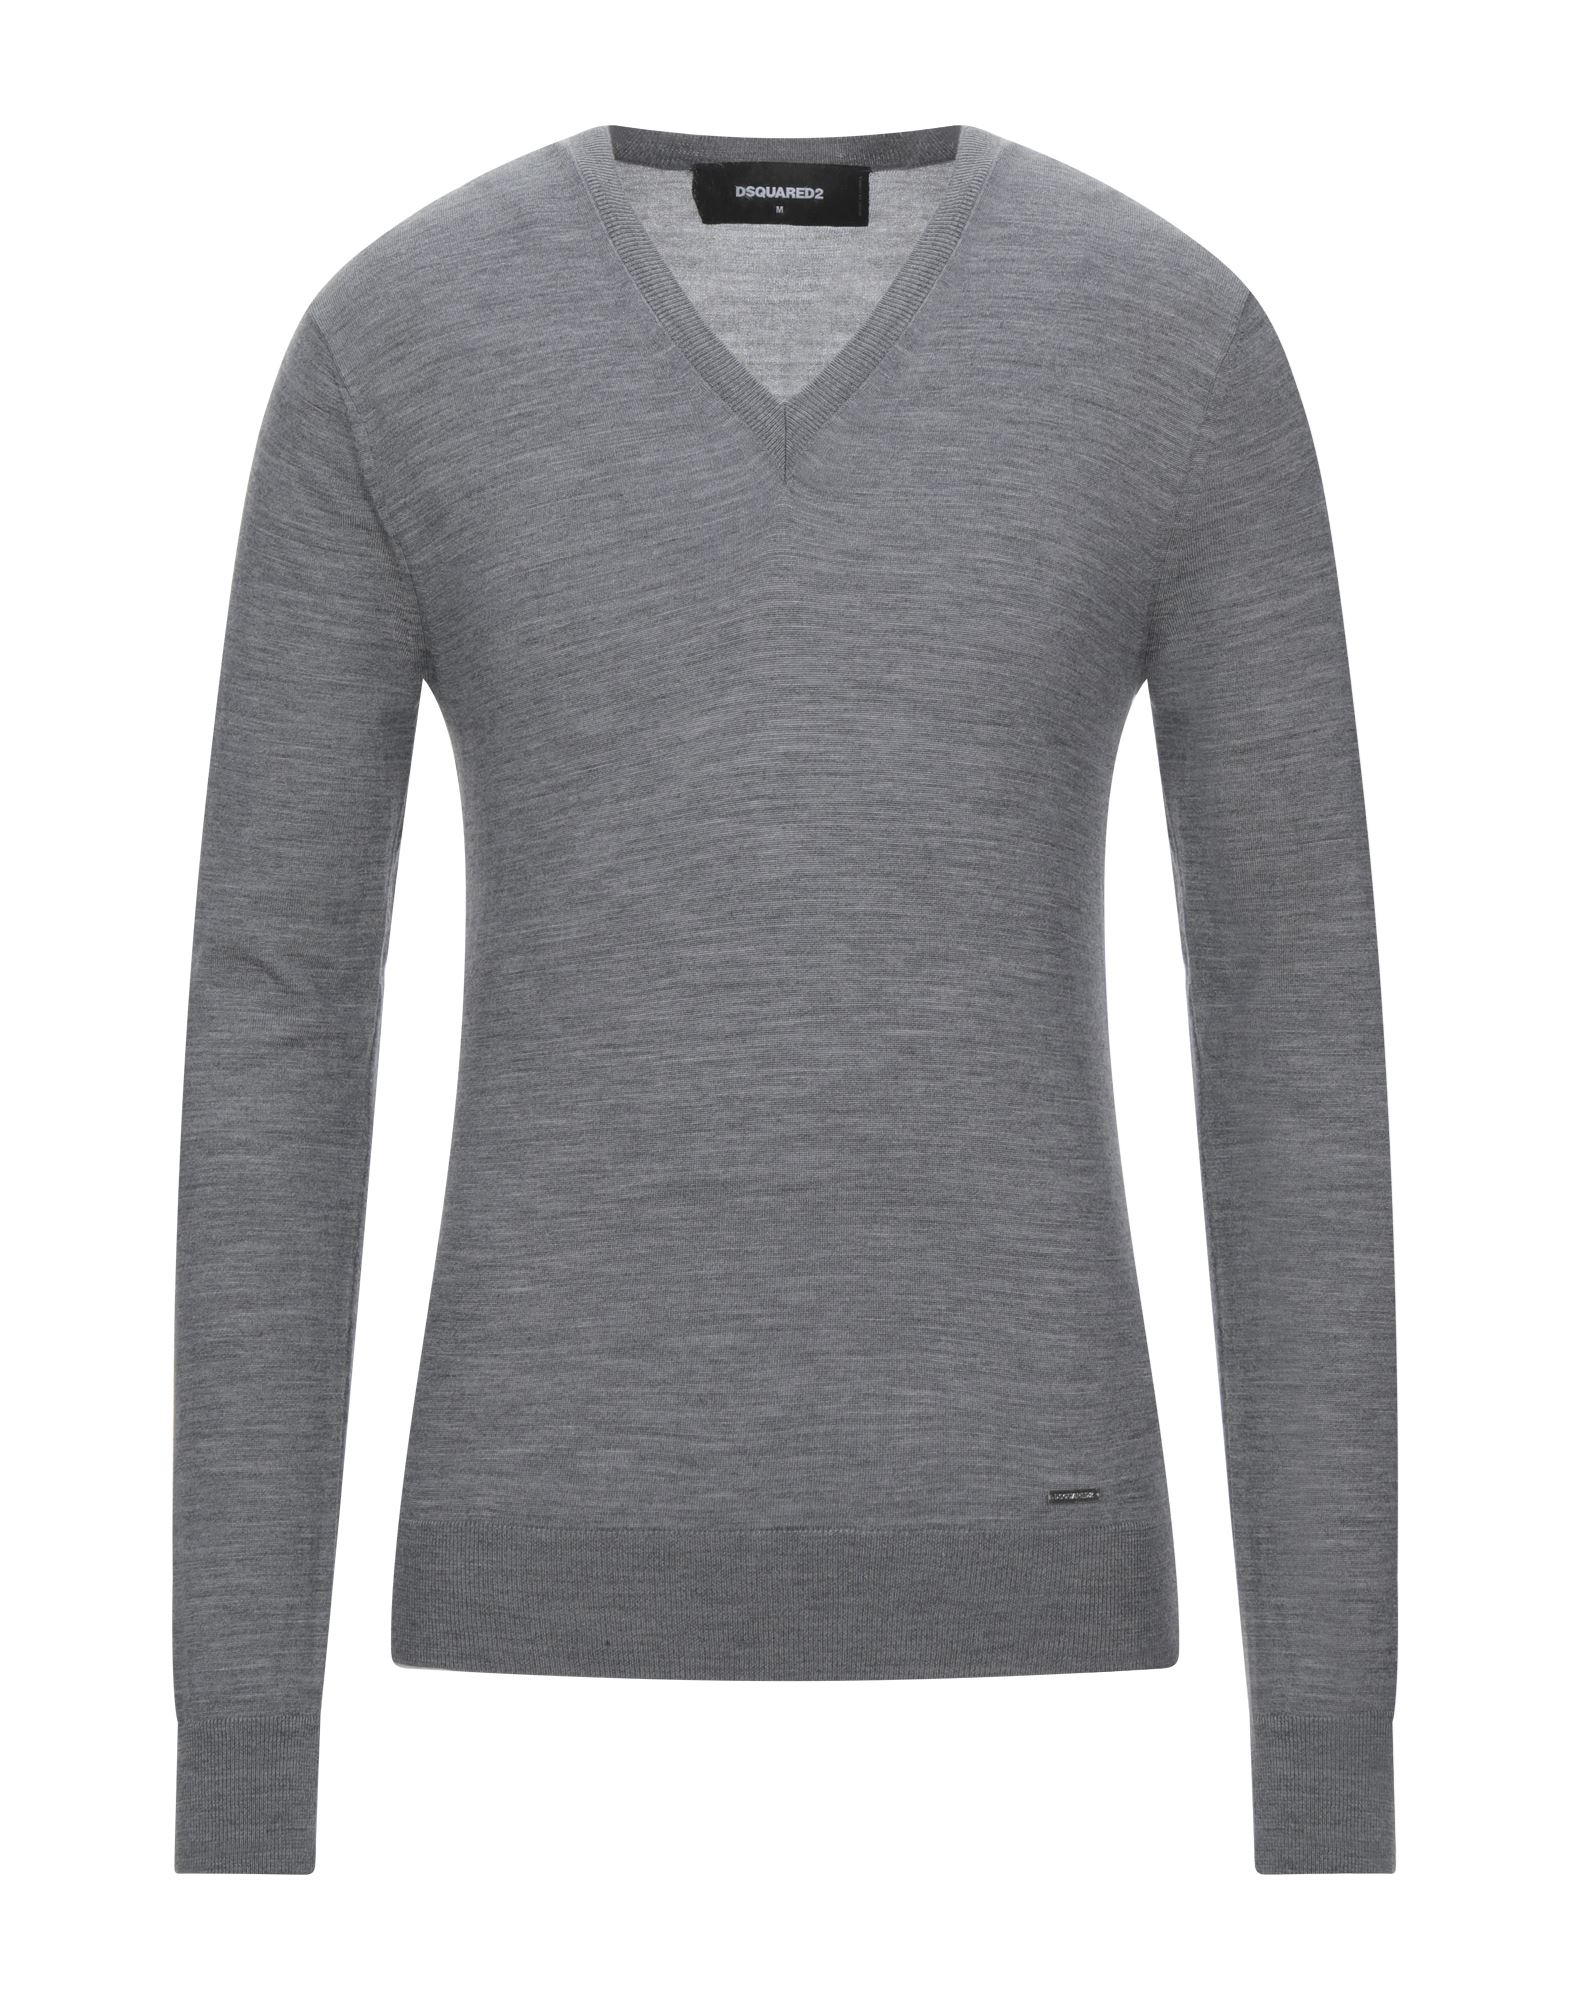 DSQUARED2 Sweaters. Knitted Mélange Logo Basic solid color V-neck Lightweight sweater Long sleeves No pockets Large sized. 100% Wool